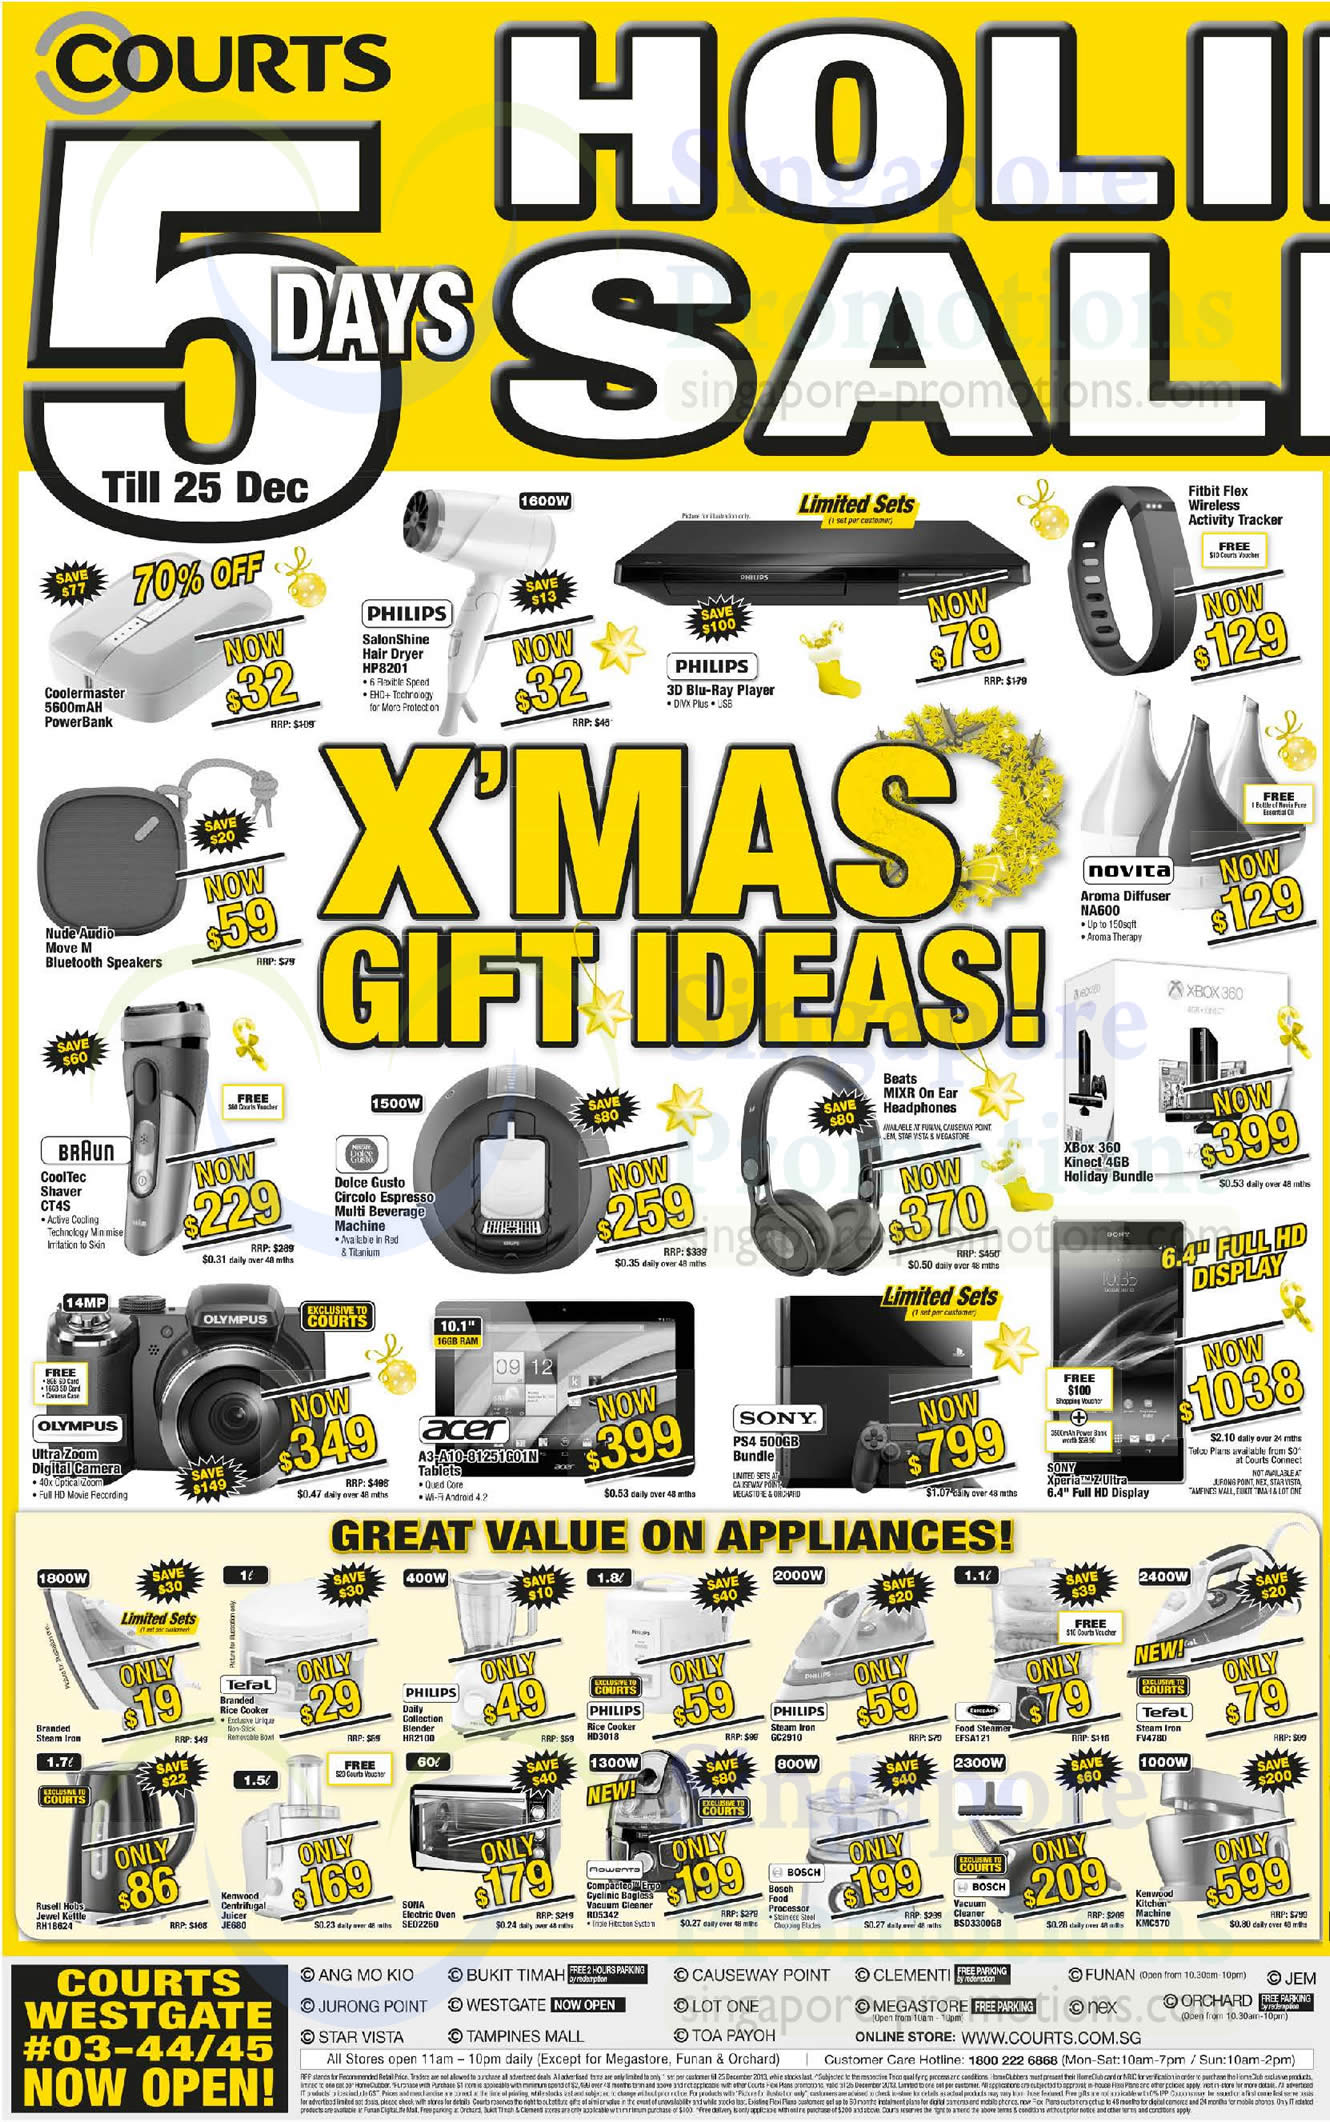 Xmas Gift Ideas, Speakers, Tablets, Irons, Vacuum Cleaners, Ovens, Nude Audio, Novita, BrAun, Nescafe listed are Nude Audio Move M Speakers, Novita NA600 Aroma Diffuser, BrAun CT4S Shaver, Nescafe Dolce Gusto Circolo Espresso Coffee Machine, Beats MIXR Headphones, Acer A3-A10-81251G01N Tablet, Sony PlayStation 4, Sony Xperia Z Ultra, Philips HD3018 Rice Cooker and Philips GC2910 IronAlso listed are EuropAce EFSA121 Steamer, Tefal FV4780 Iron, Rusell Hobs RH18624 Kettle, Kenwood JE680 Juicer, Sona SEO2260 Oven, Rowenta R05342 Vacuum Cleaner, Bosch BSD3300GB Vacuum Cleaner and Kenwood KMC570 Kitchen Machine